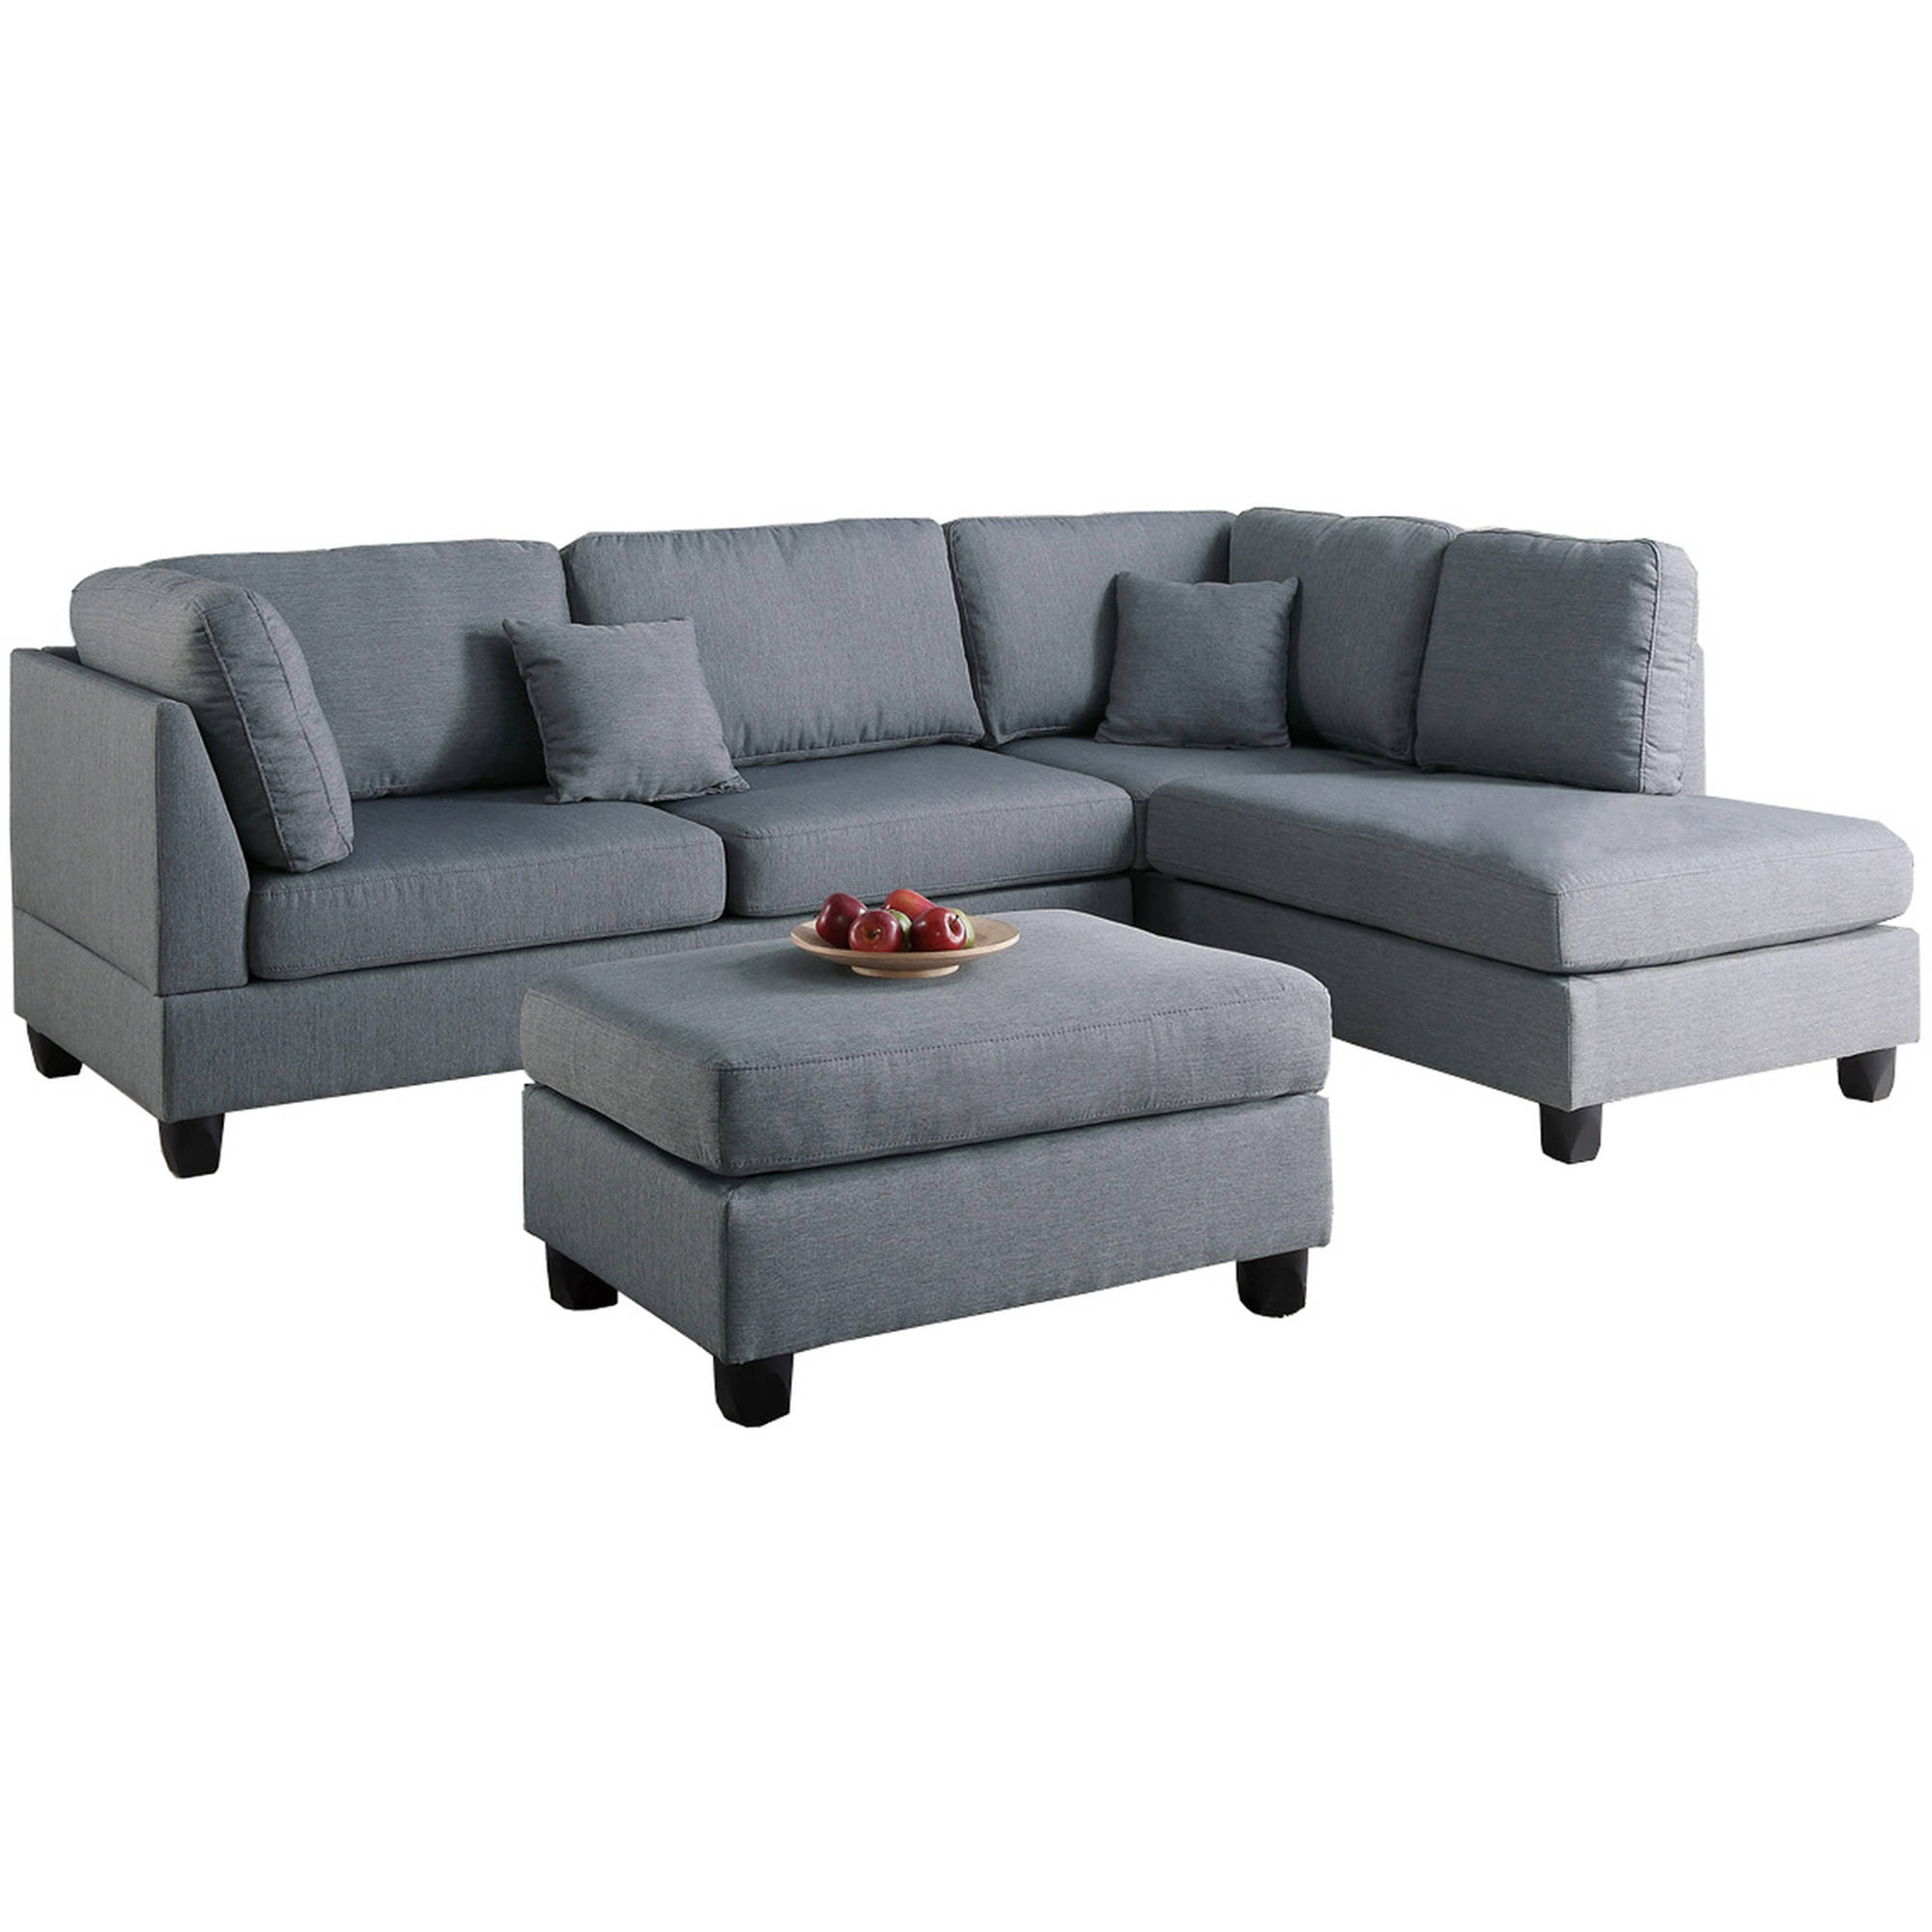 Bobkona Dervon Linen-Like Polyfabric Left or Right Hand Chaise Sectional with Ottoman Set by Poundex